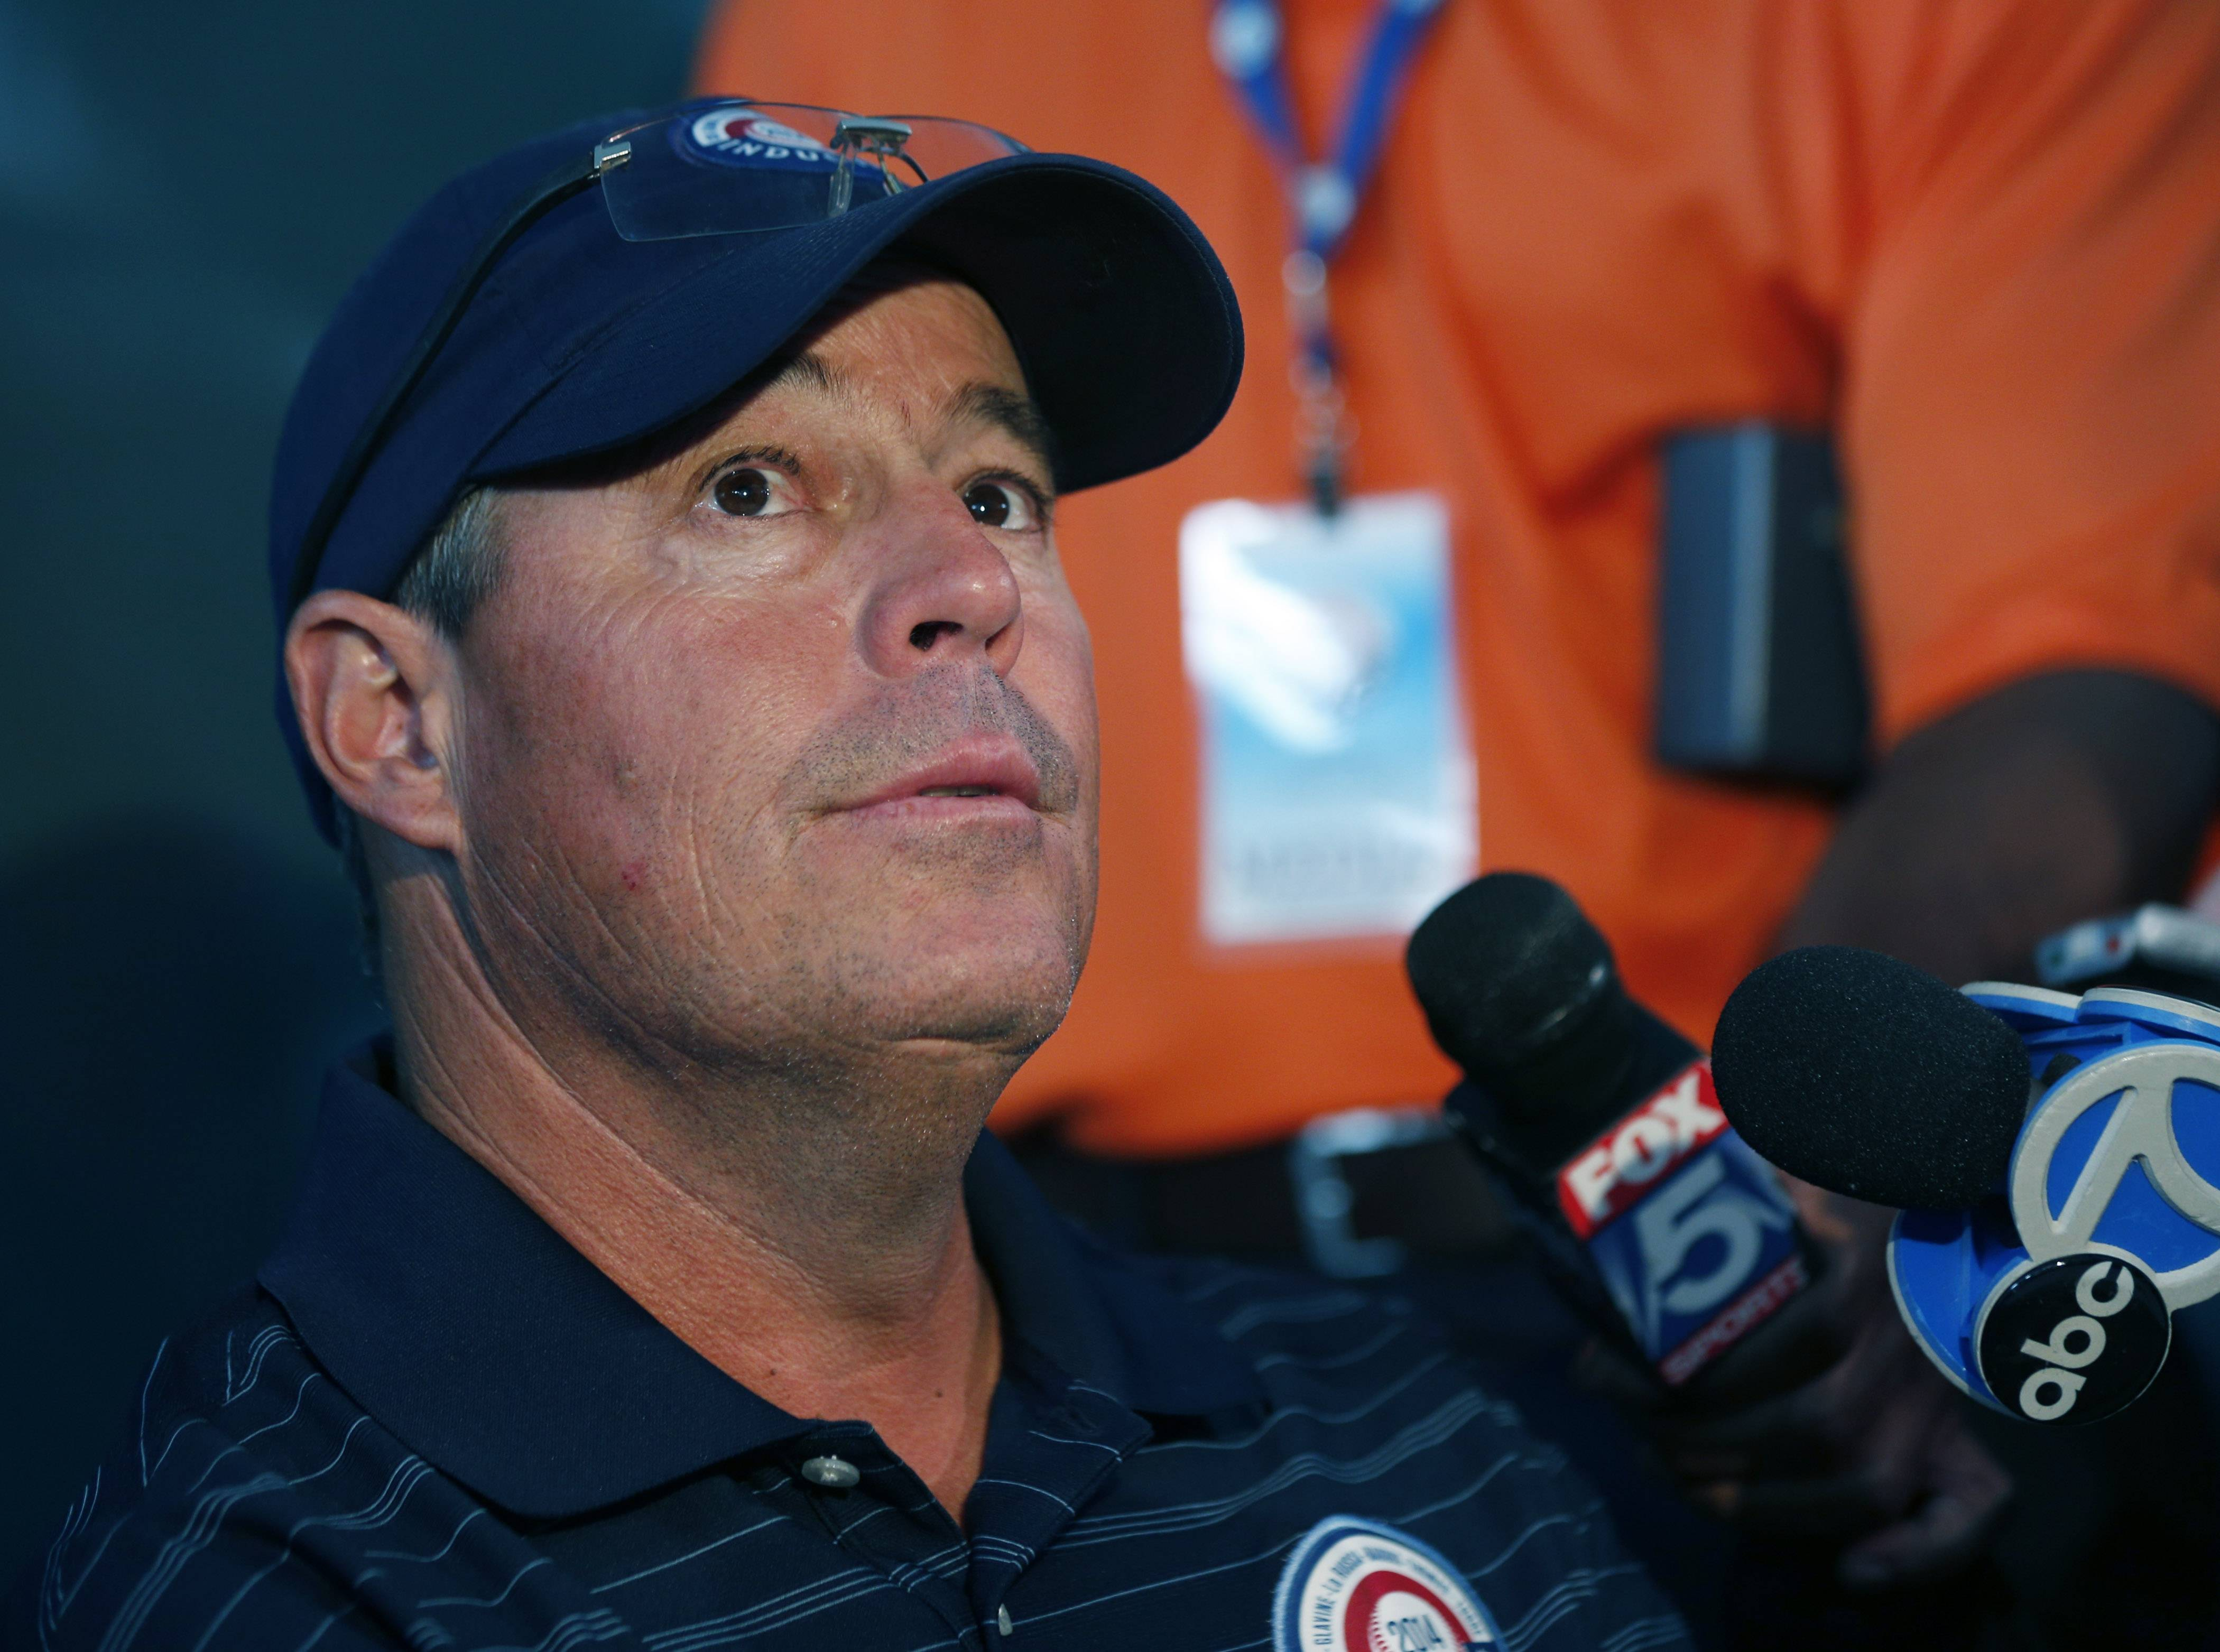 Former Cubs and Atlanta Braves pitcher Greg Maddux speaks during a news conference Saturday in Cooperstown, N.Y. Maddux will be inducted to the Baseball Hall of Fame on Sunday.